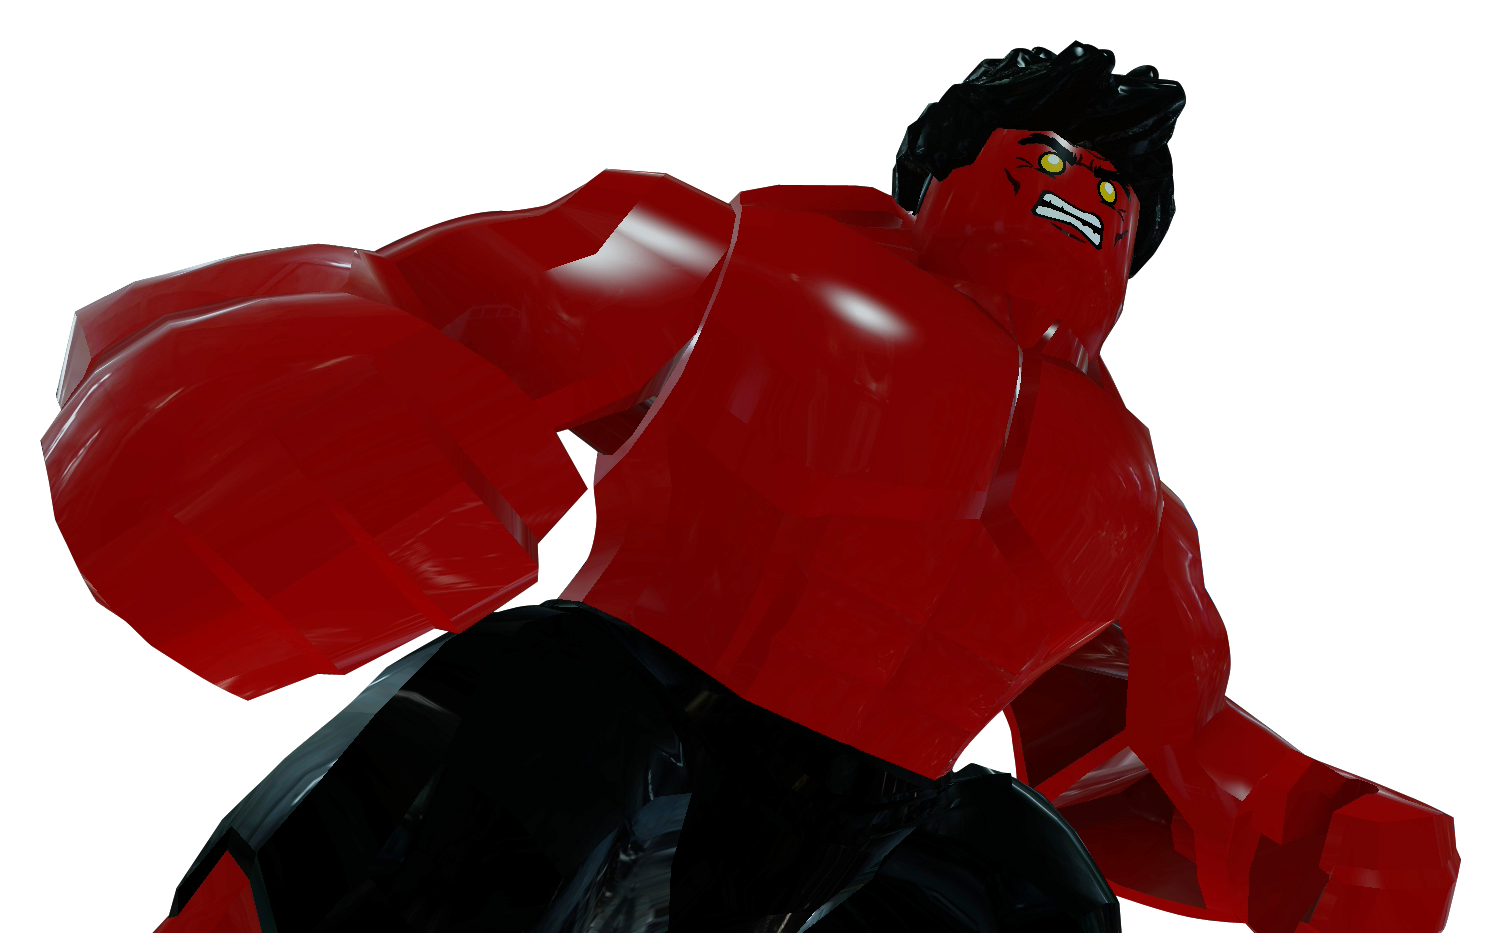 Red hulk brickipedia the lego wiki - Pictures of red hulk ...